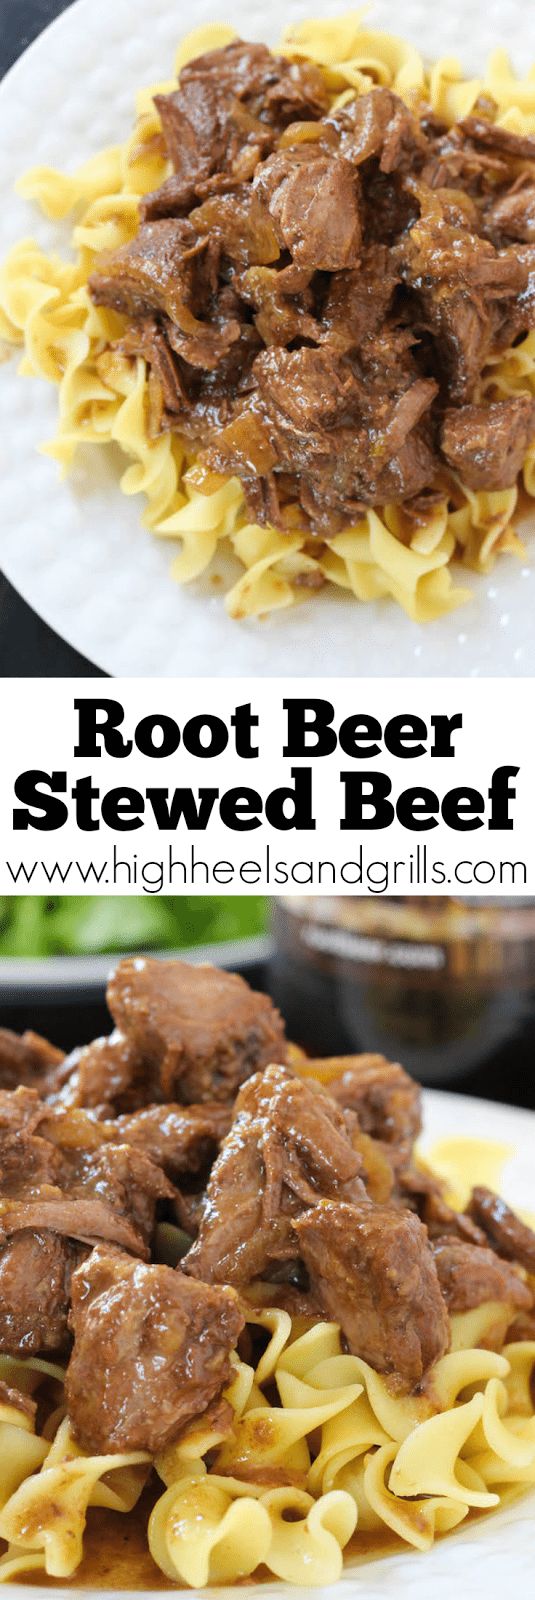 Root Beer Stewed Beef. Serve over egg noodles for an easy, weeknight dinnerl! highheelsandgrills.com